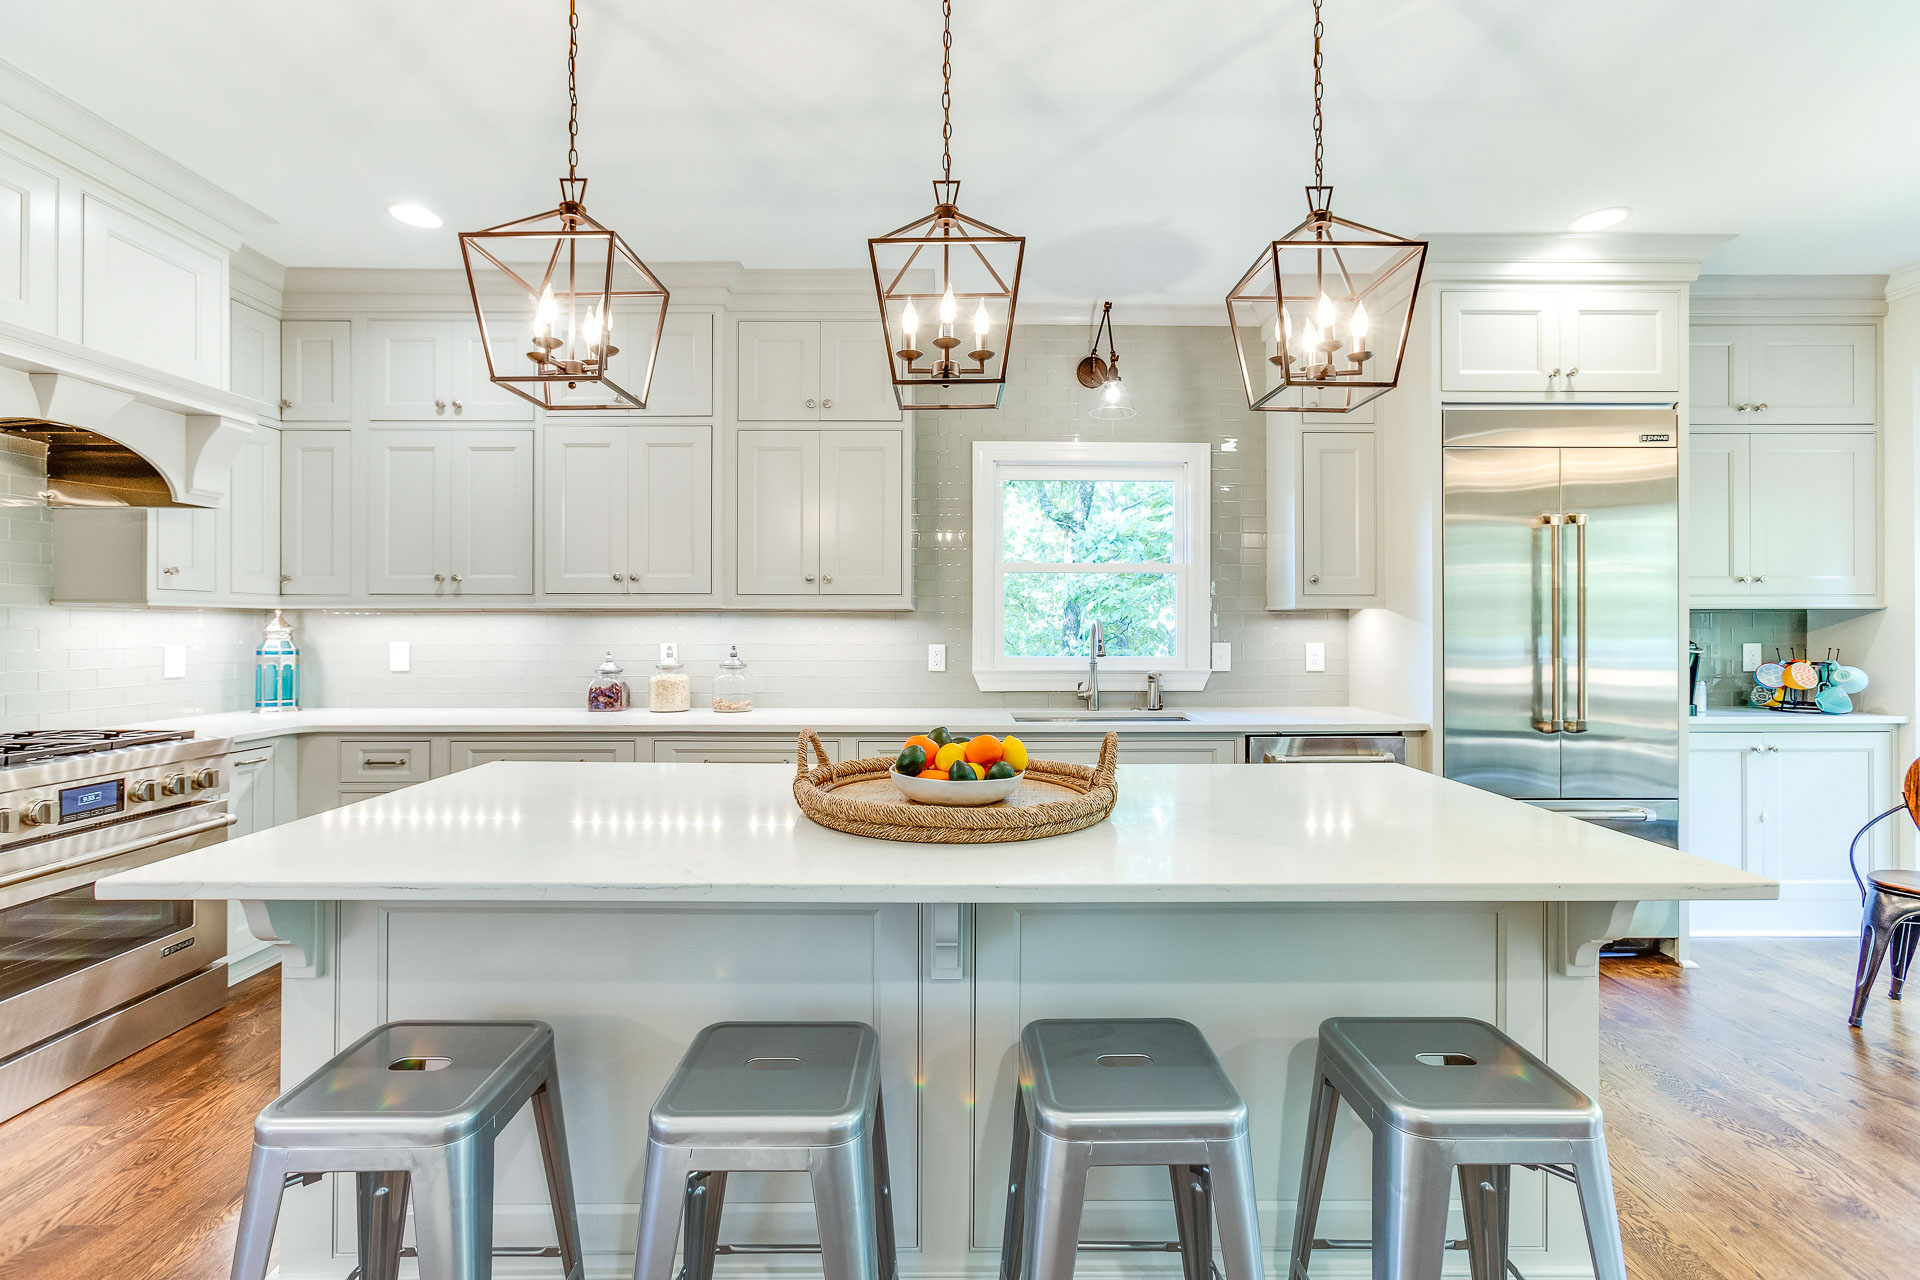 The kitchen island and surrounding countertops are Dupont Zodiaq quartz in London Sky.